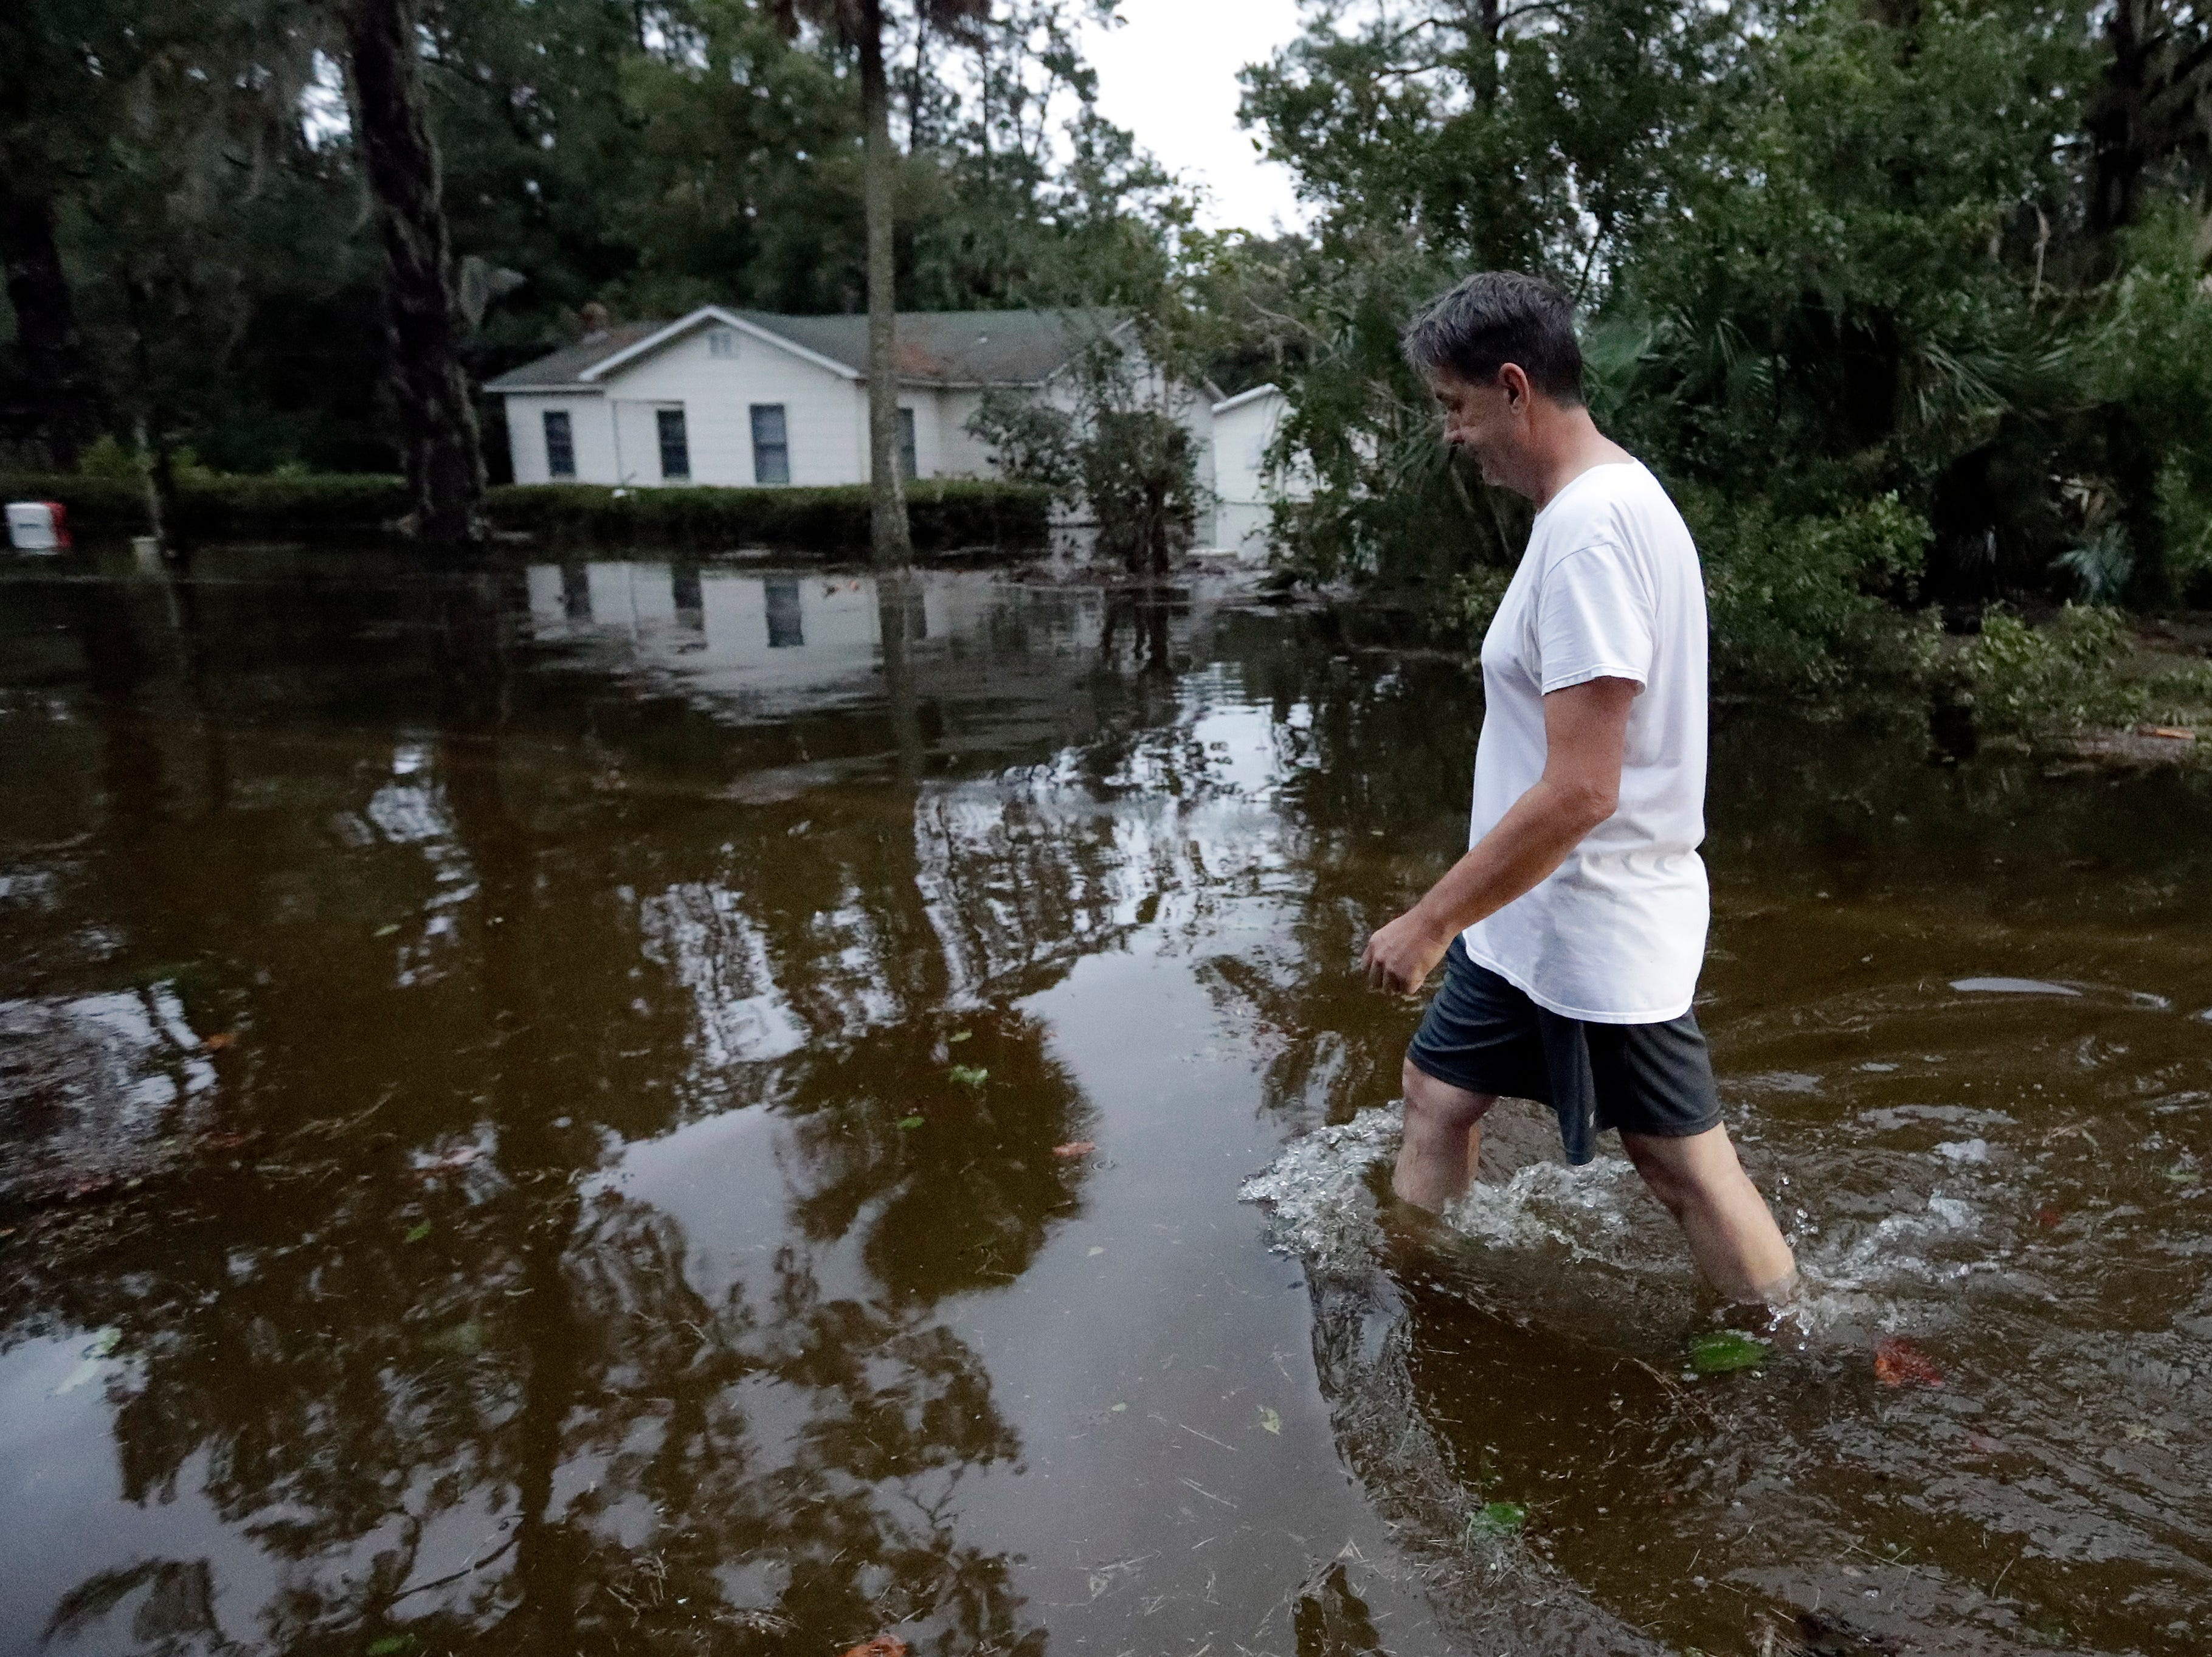 John Gouge walks through flood waters as he goes to check on the post office Wednesday, Oct. 10, 2018, in St. Marks, Fla. Supercharged by abnormally warm waters in the Gulf of Mexico, Hurricane Michael slammed into the Florida Panhandle with terrifying winds of 155 mph Wednesday, splintering homes and submerging neighborhoods before continuing its march inland.